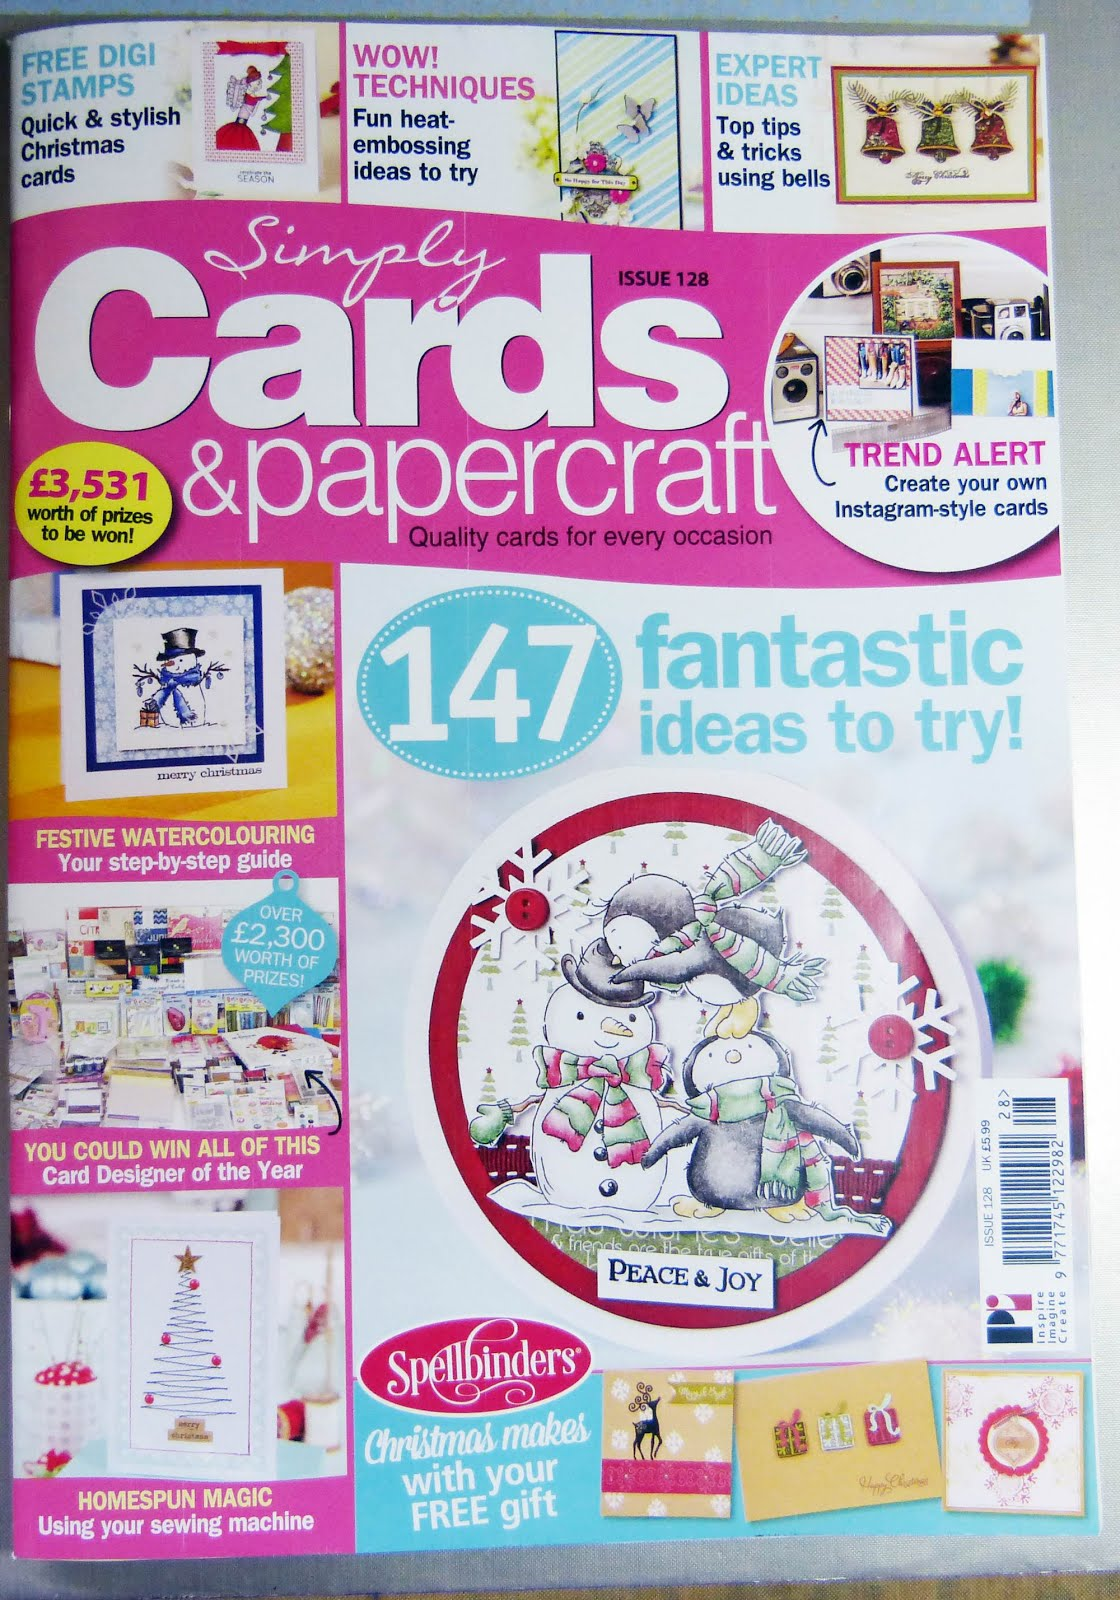 Published Simply Cards & Paper Crafts Issue 128